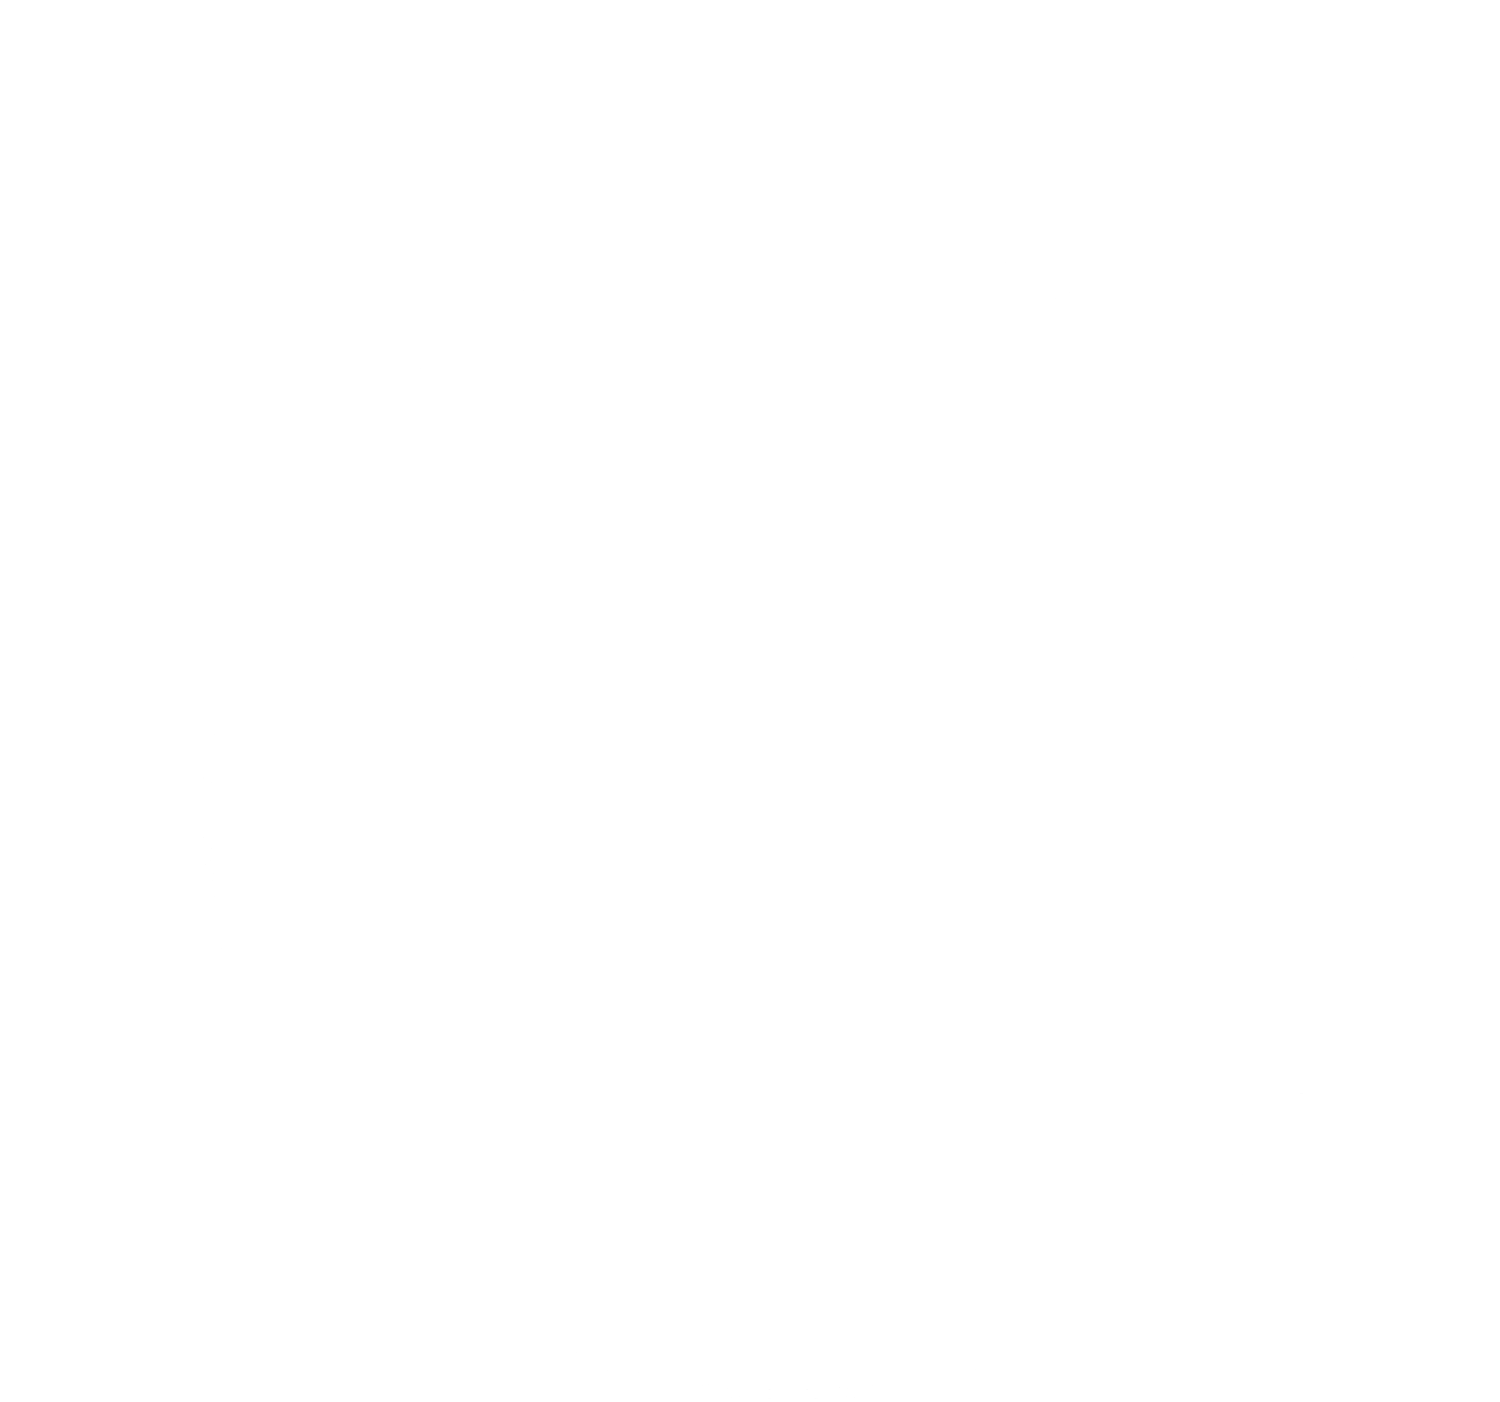 A Heaping Spoonful